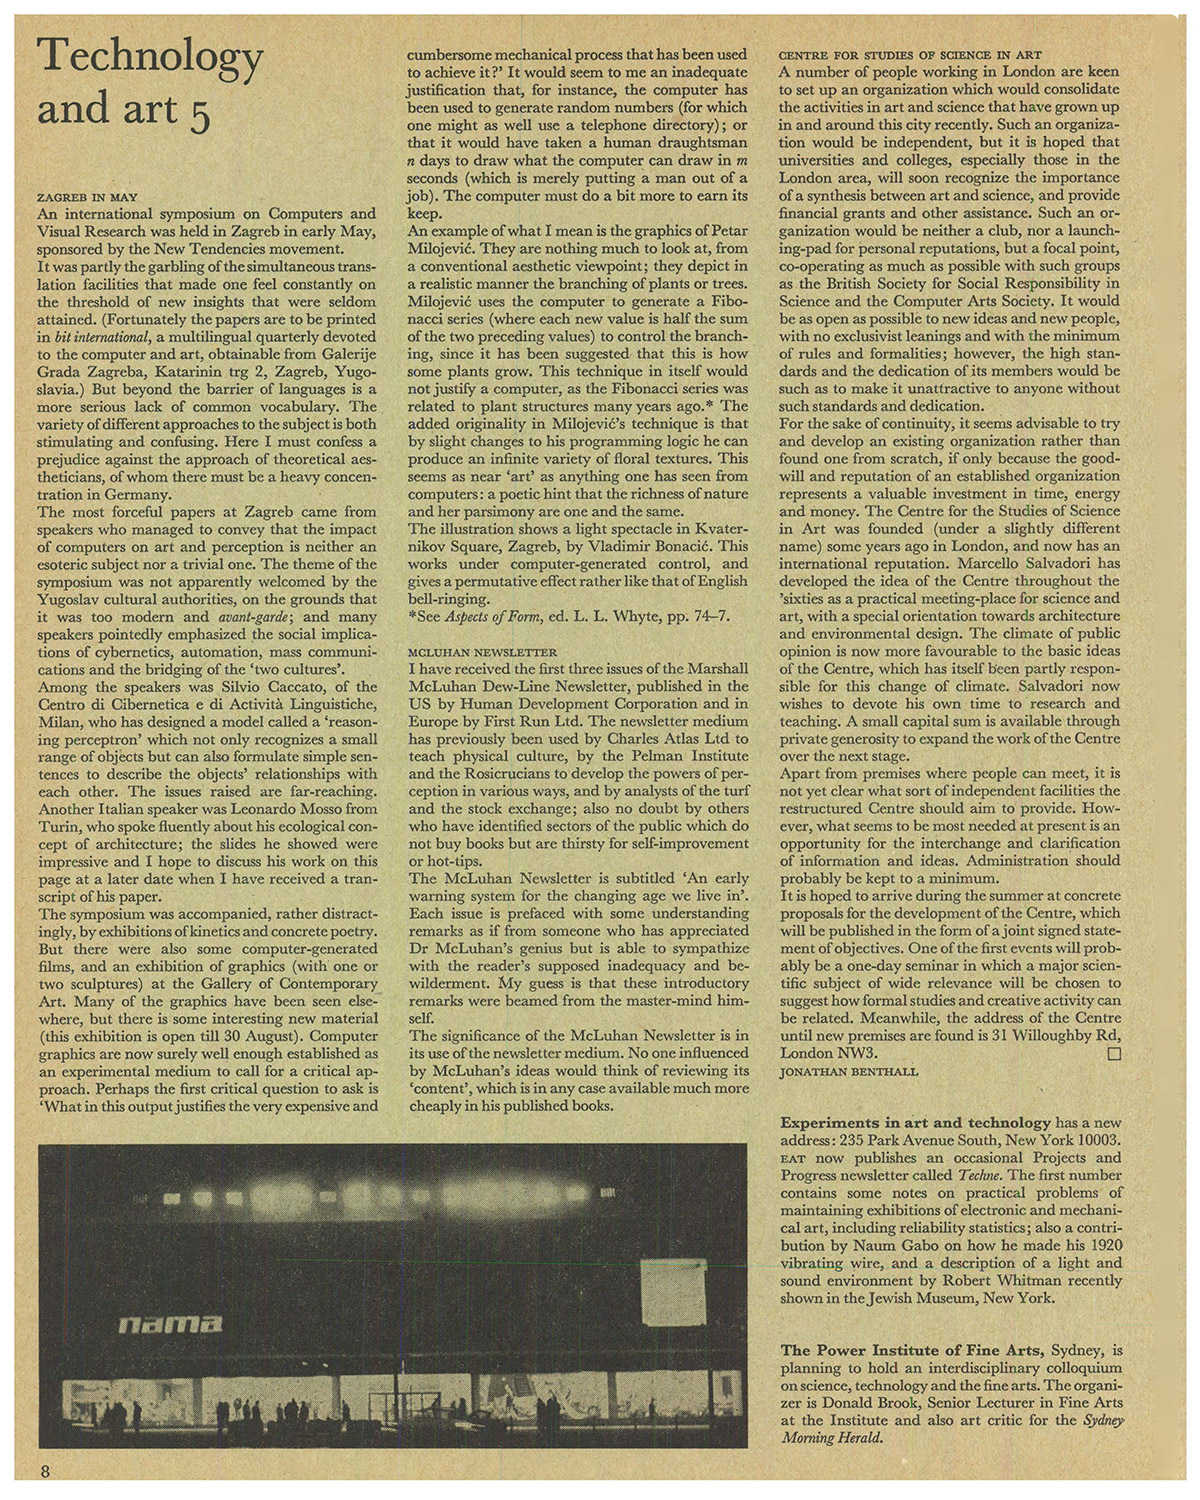 Technology and Art 5 Studio International, Vol 178, No 913, November 1969, p 8.